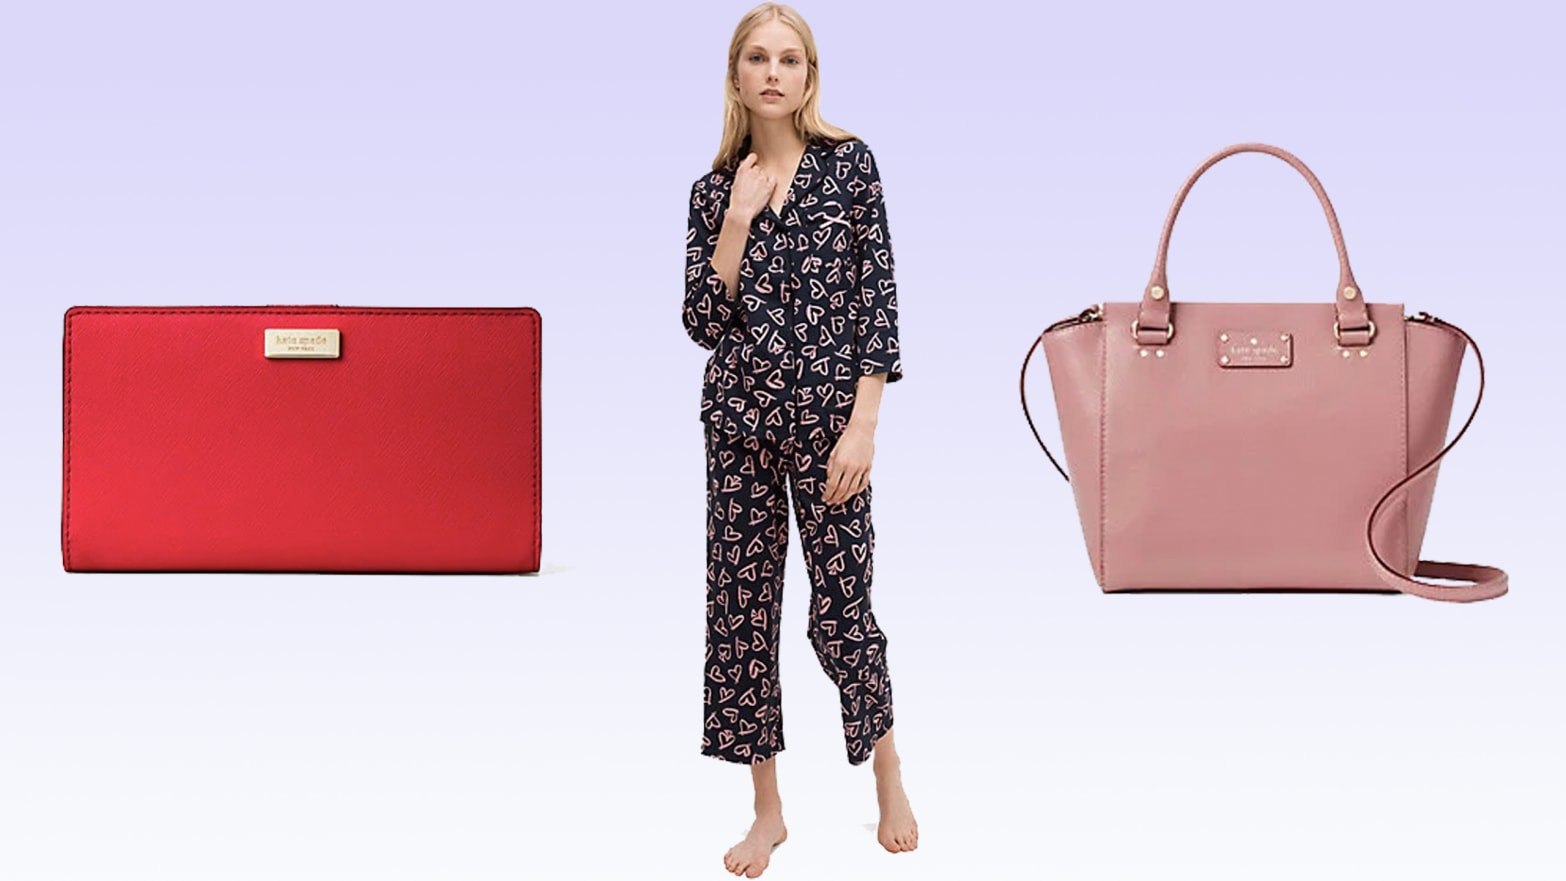 Kate Spade Surprise Sale: Up to 75% Off Bags, Clothing, Accessories, Jewelry, and More